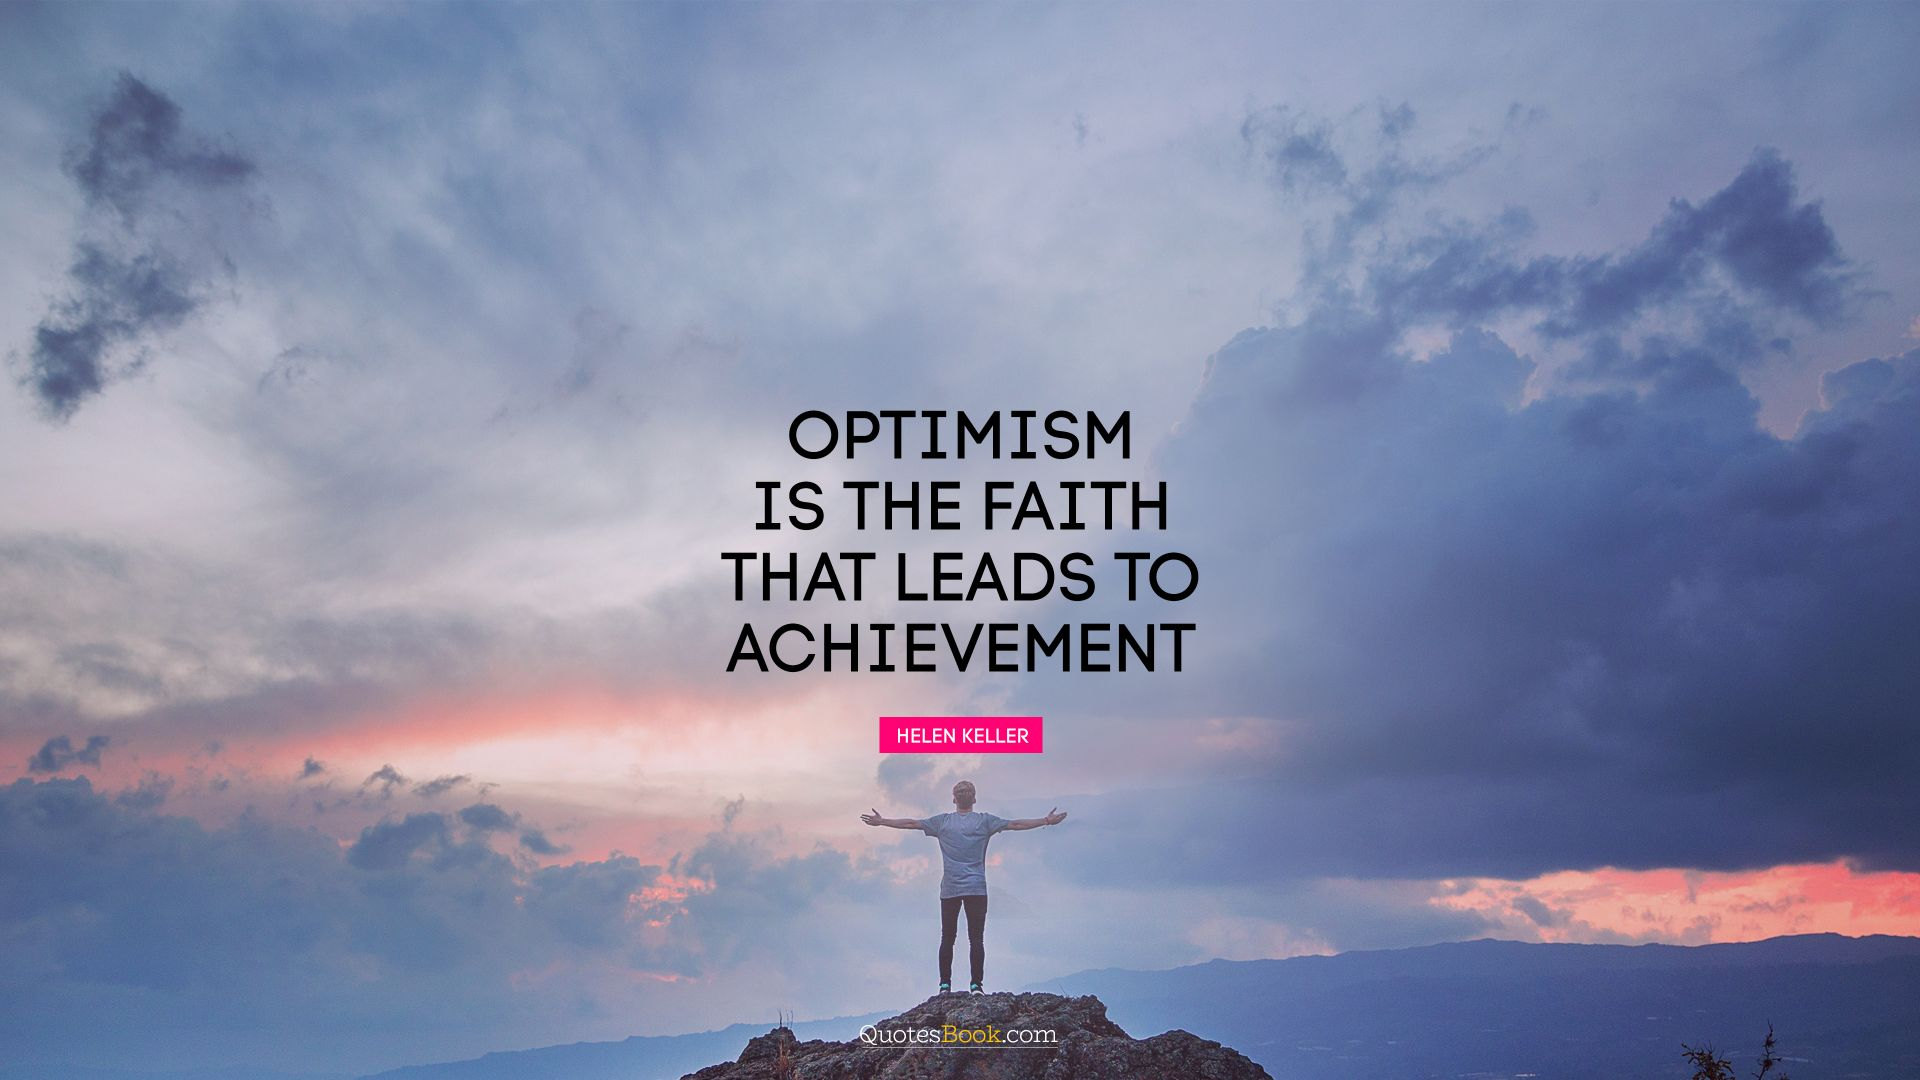 Optimism is the faith that leads to achievement. - Quote by Helen Keller